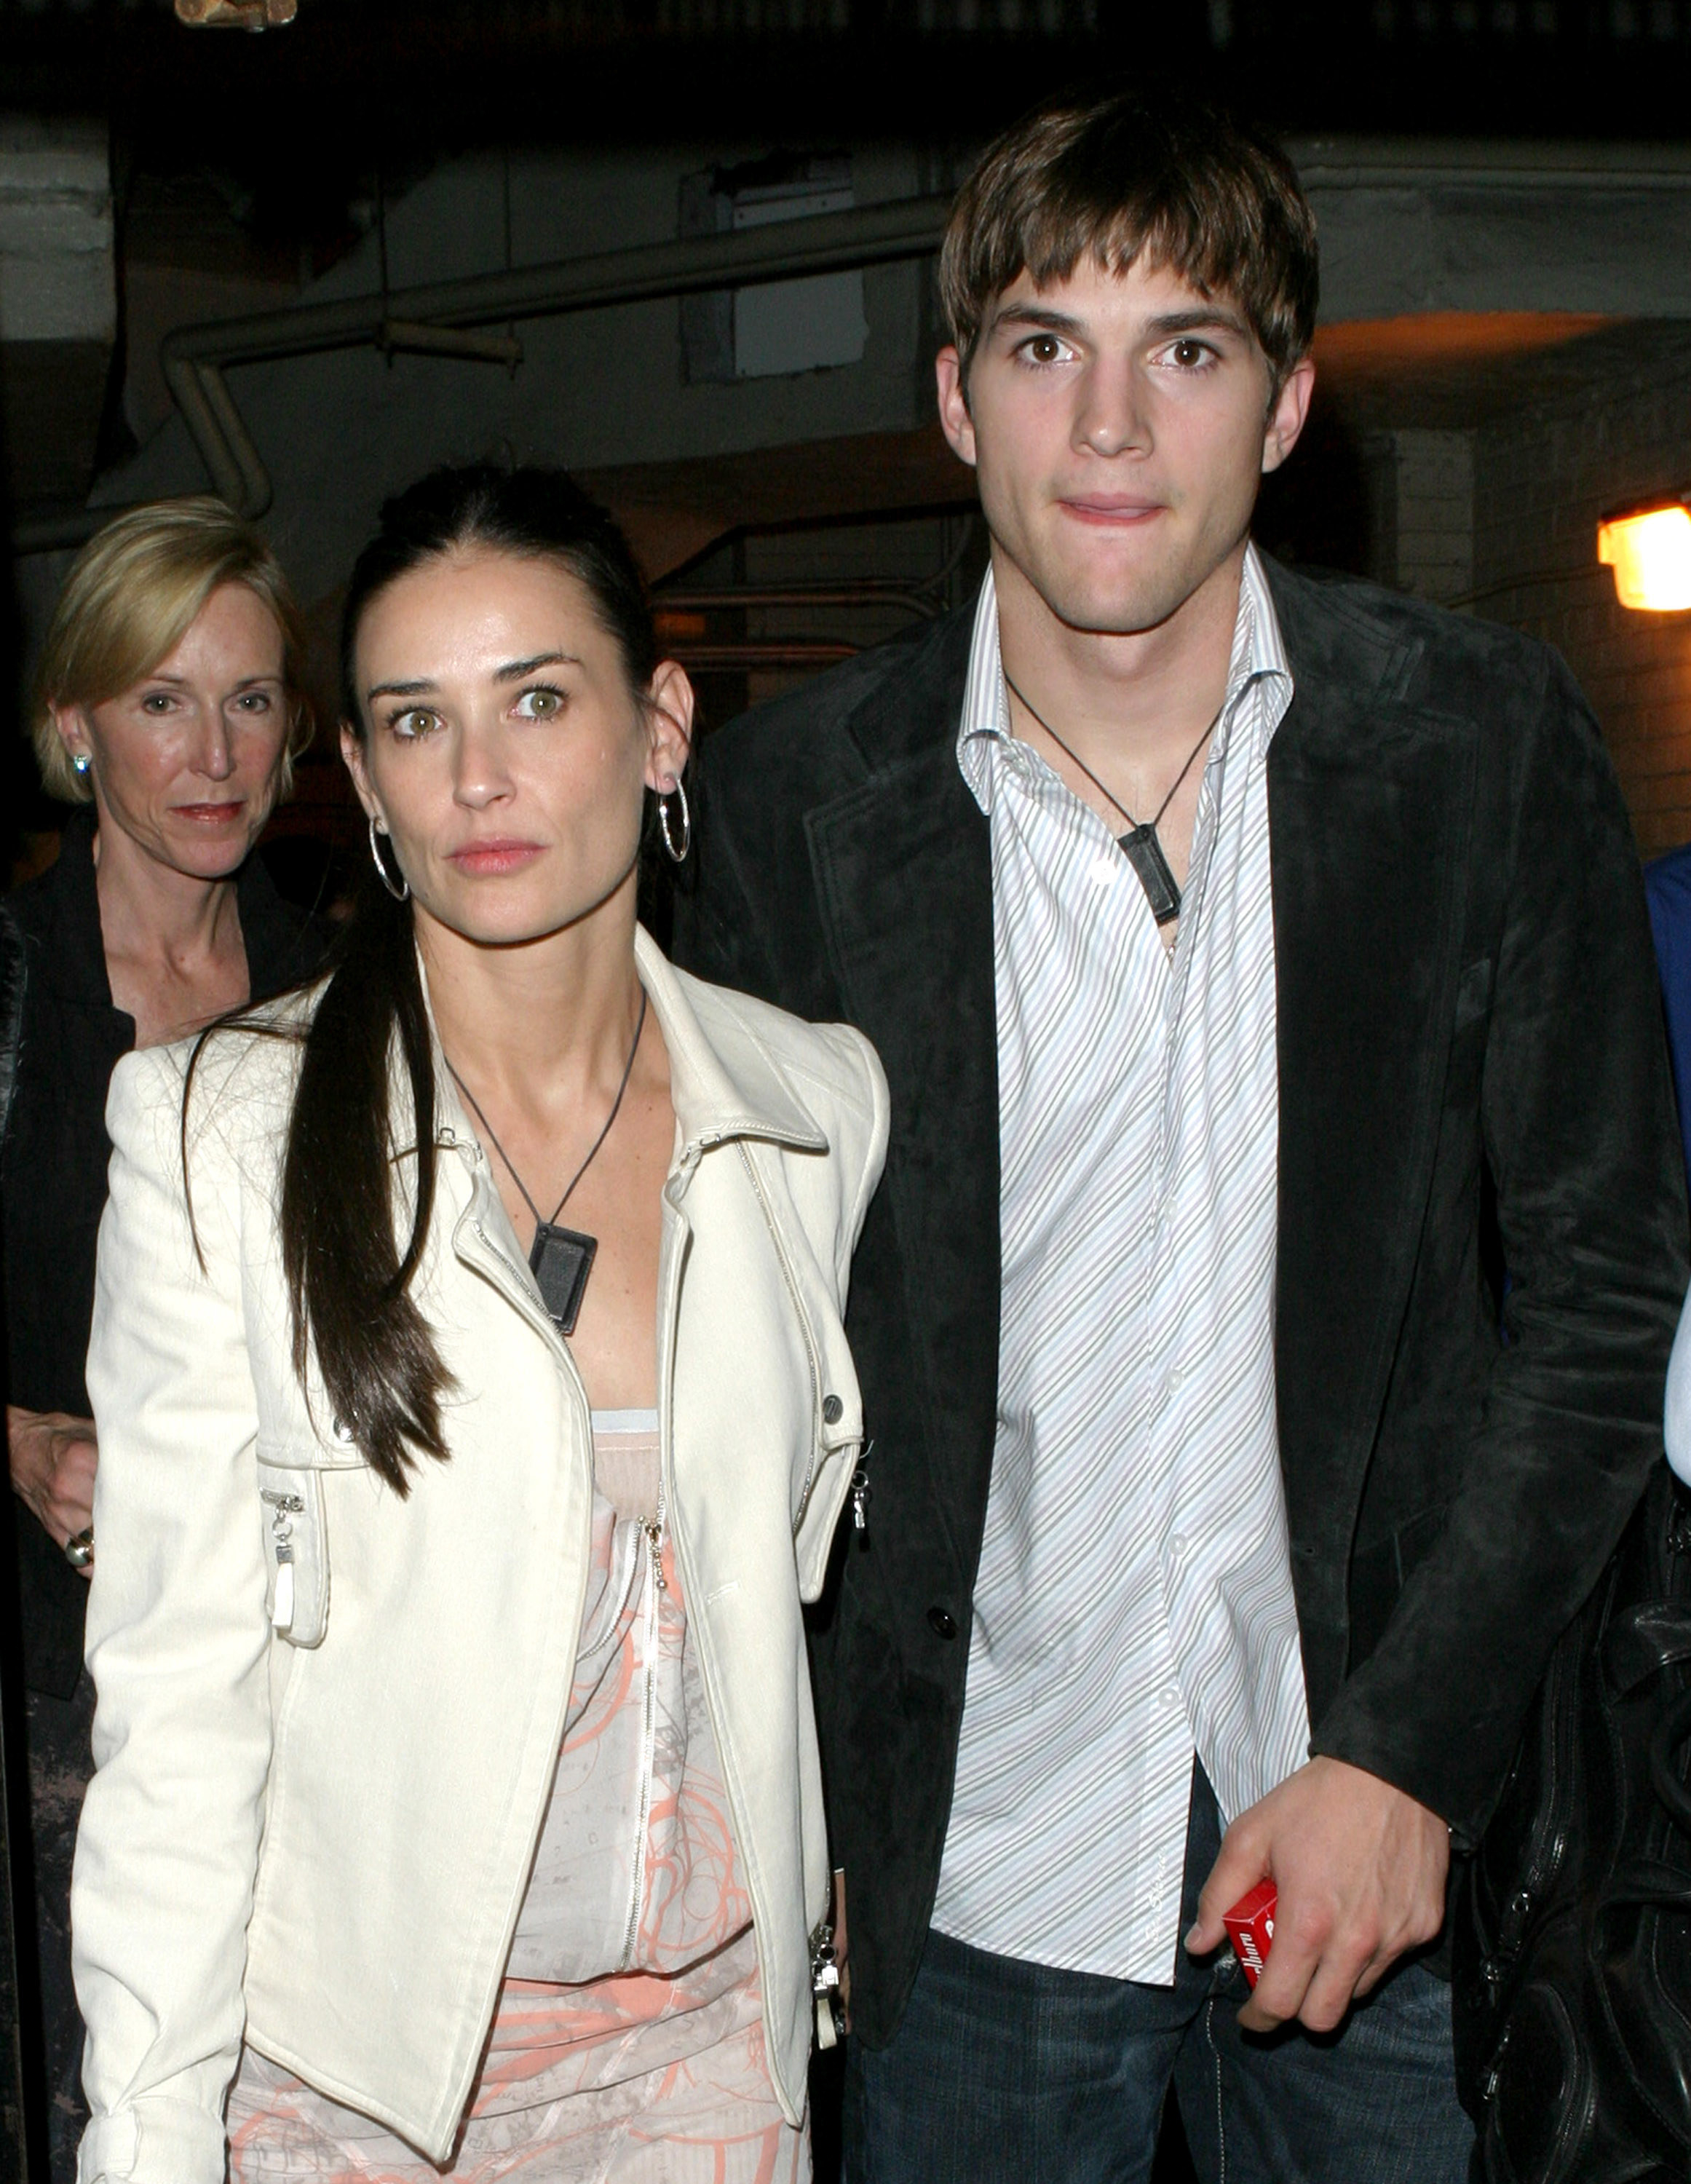 Demi Moore and Ashton Kutcher wear little leather books on necklaces